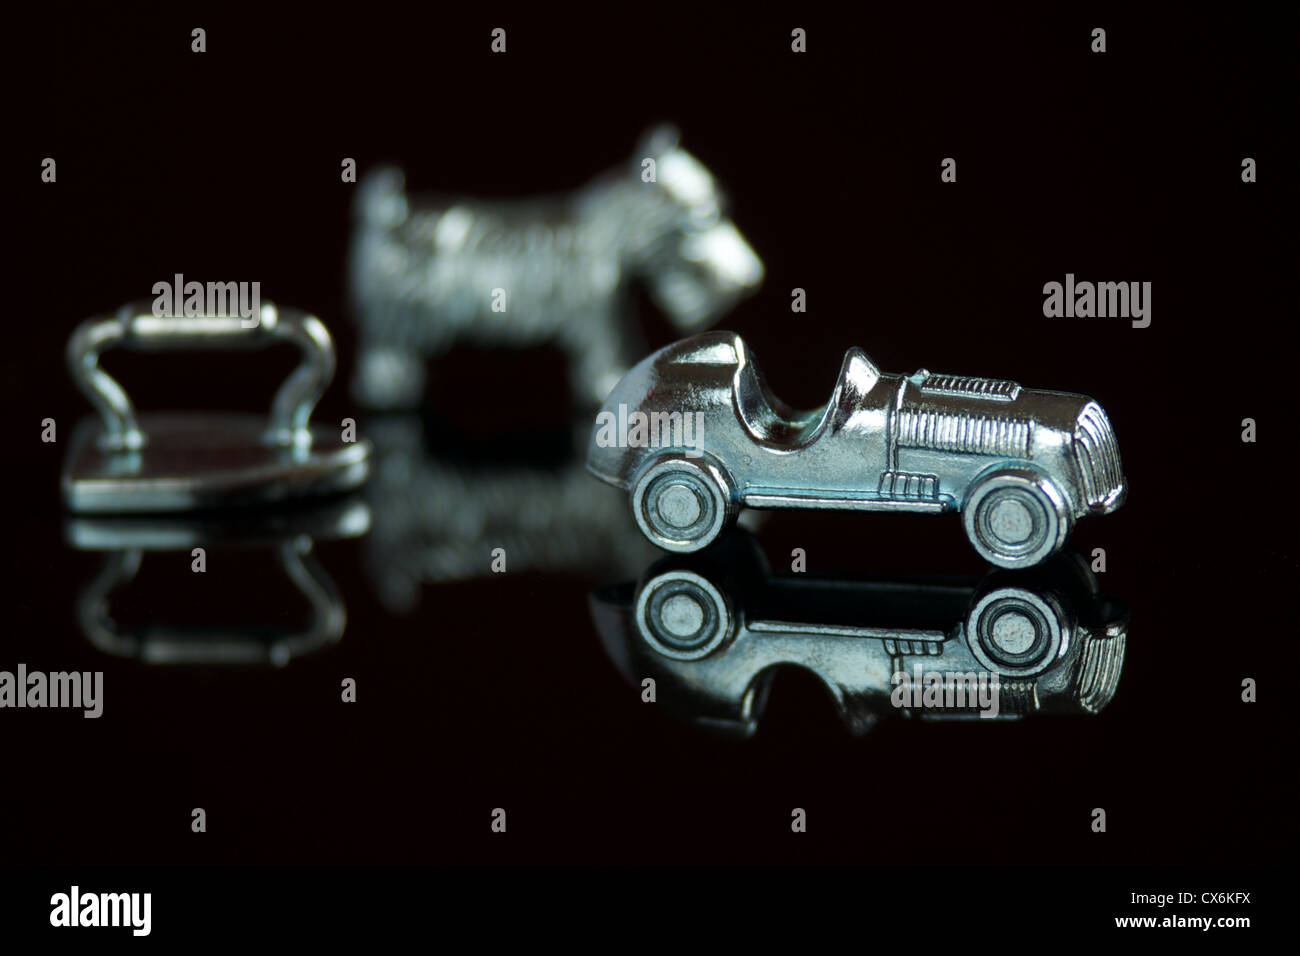 Monopoly game pieces with reflections isolated on a black background - Stock Image